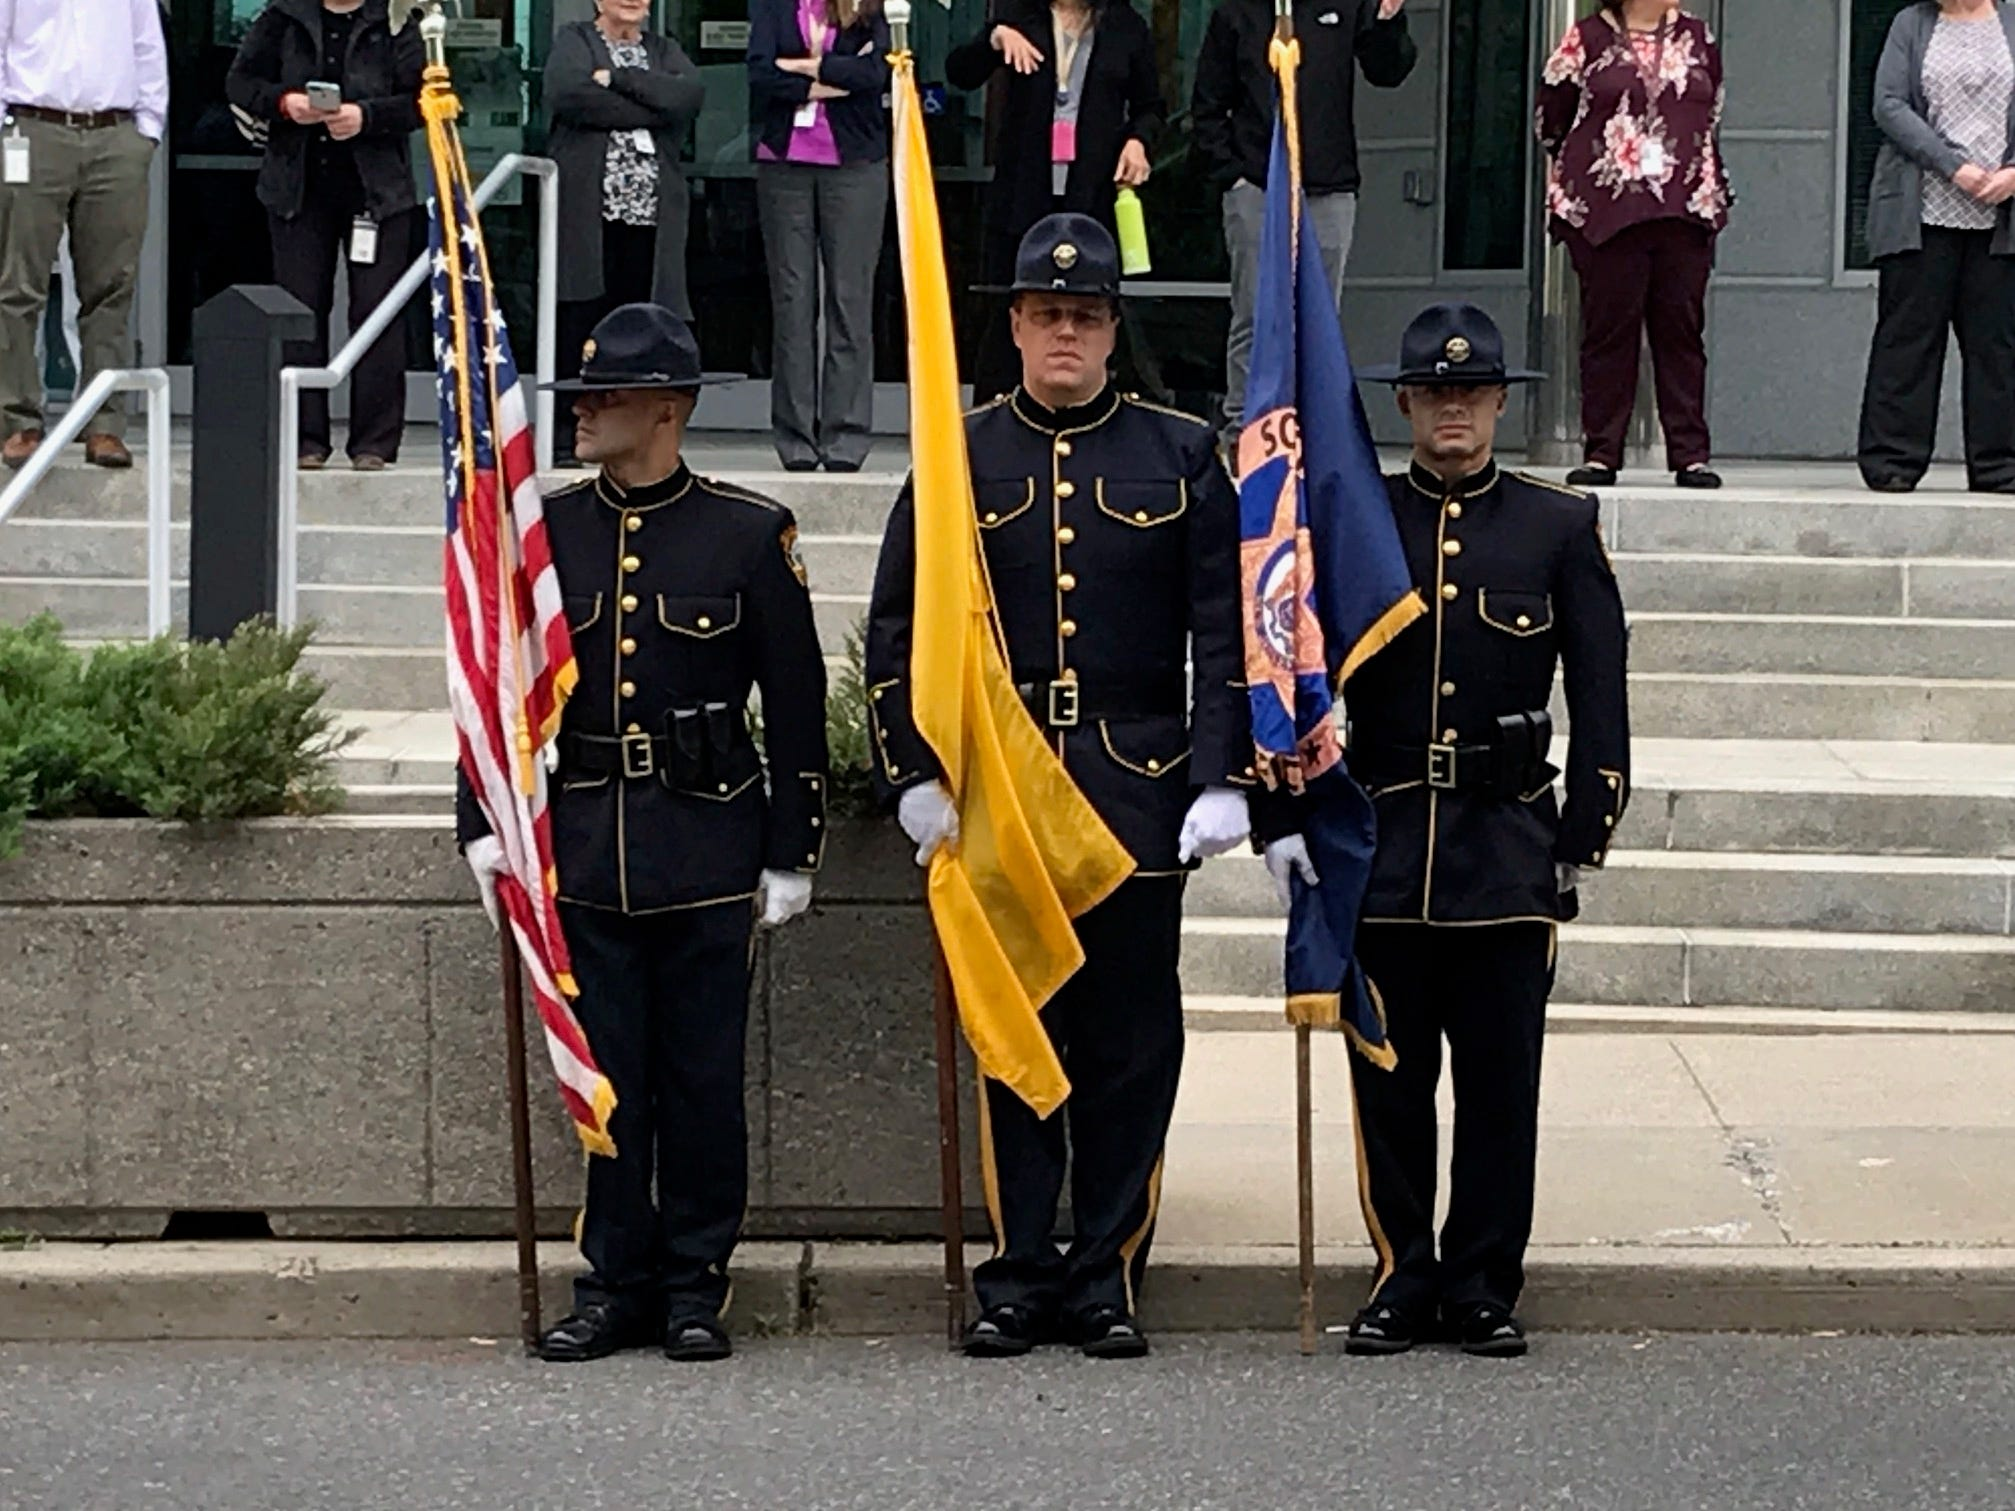 The honor guard in front of the Union County Administration Building prepare for the Police Unity Tour to travel through Somerville.